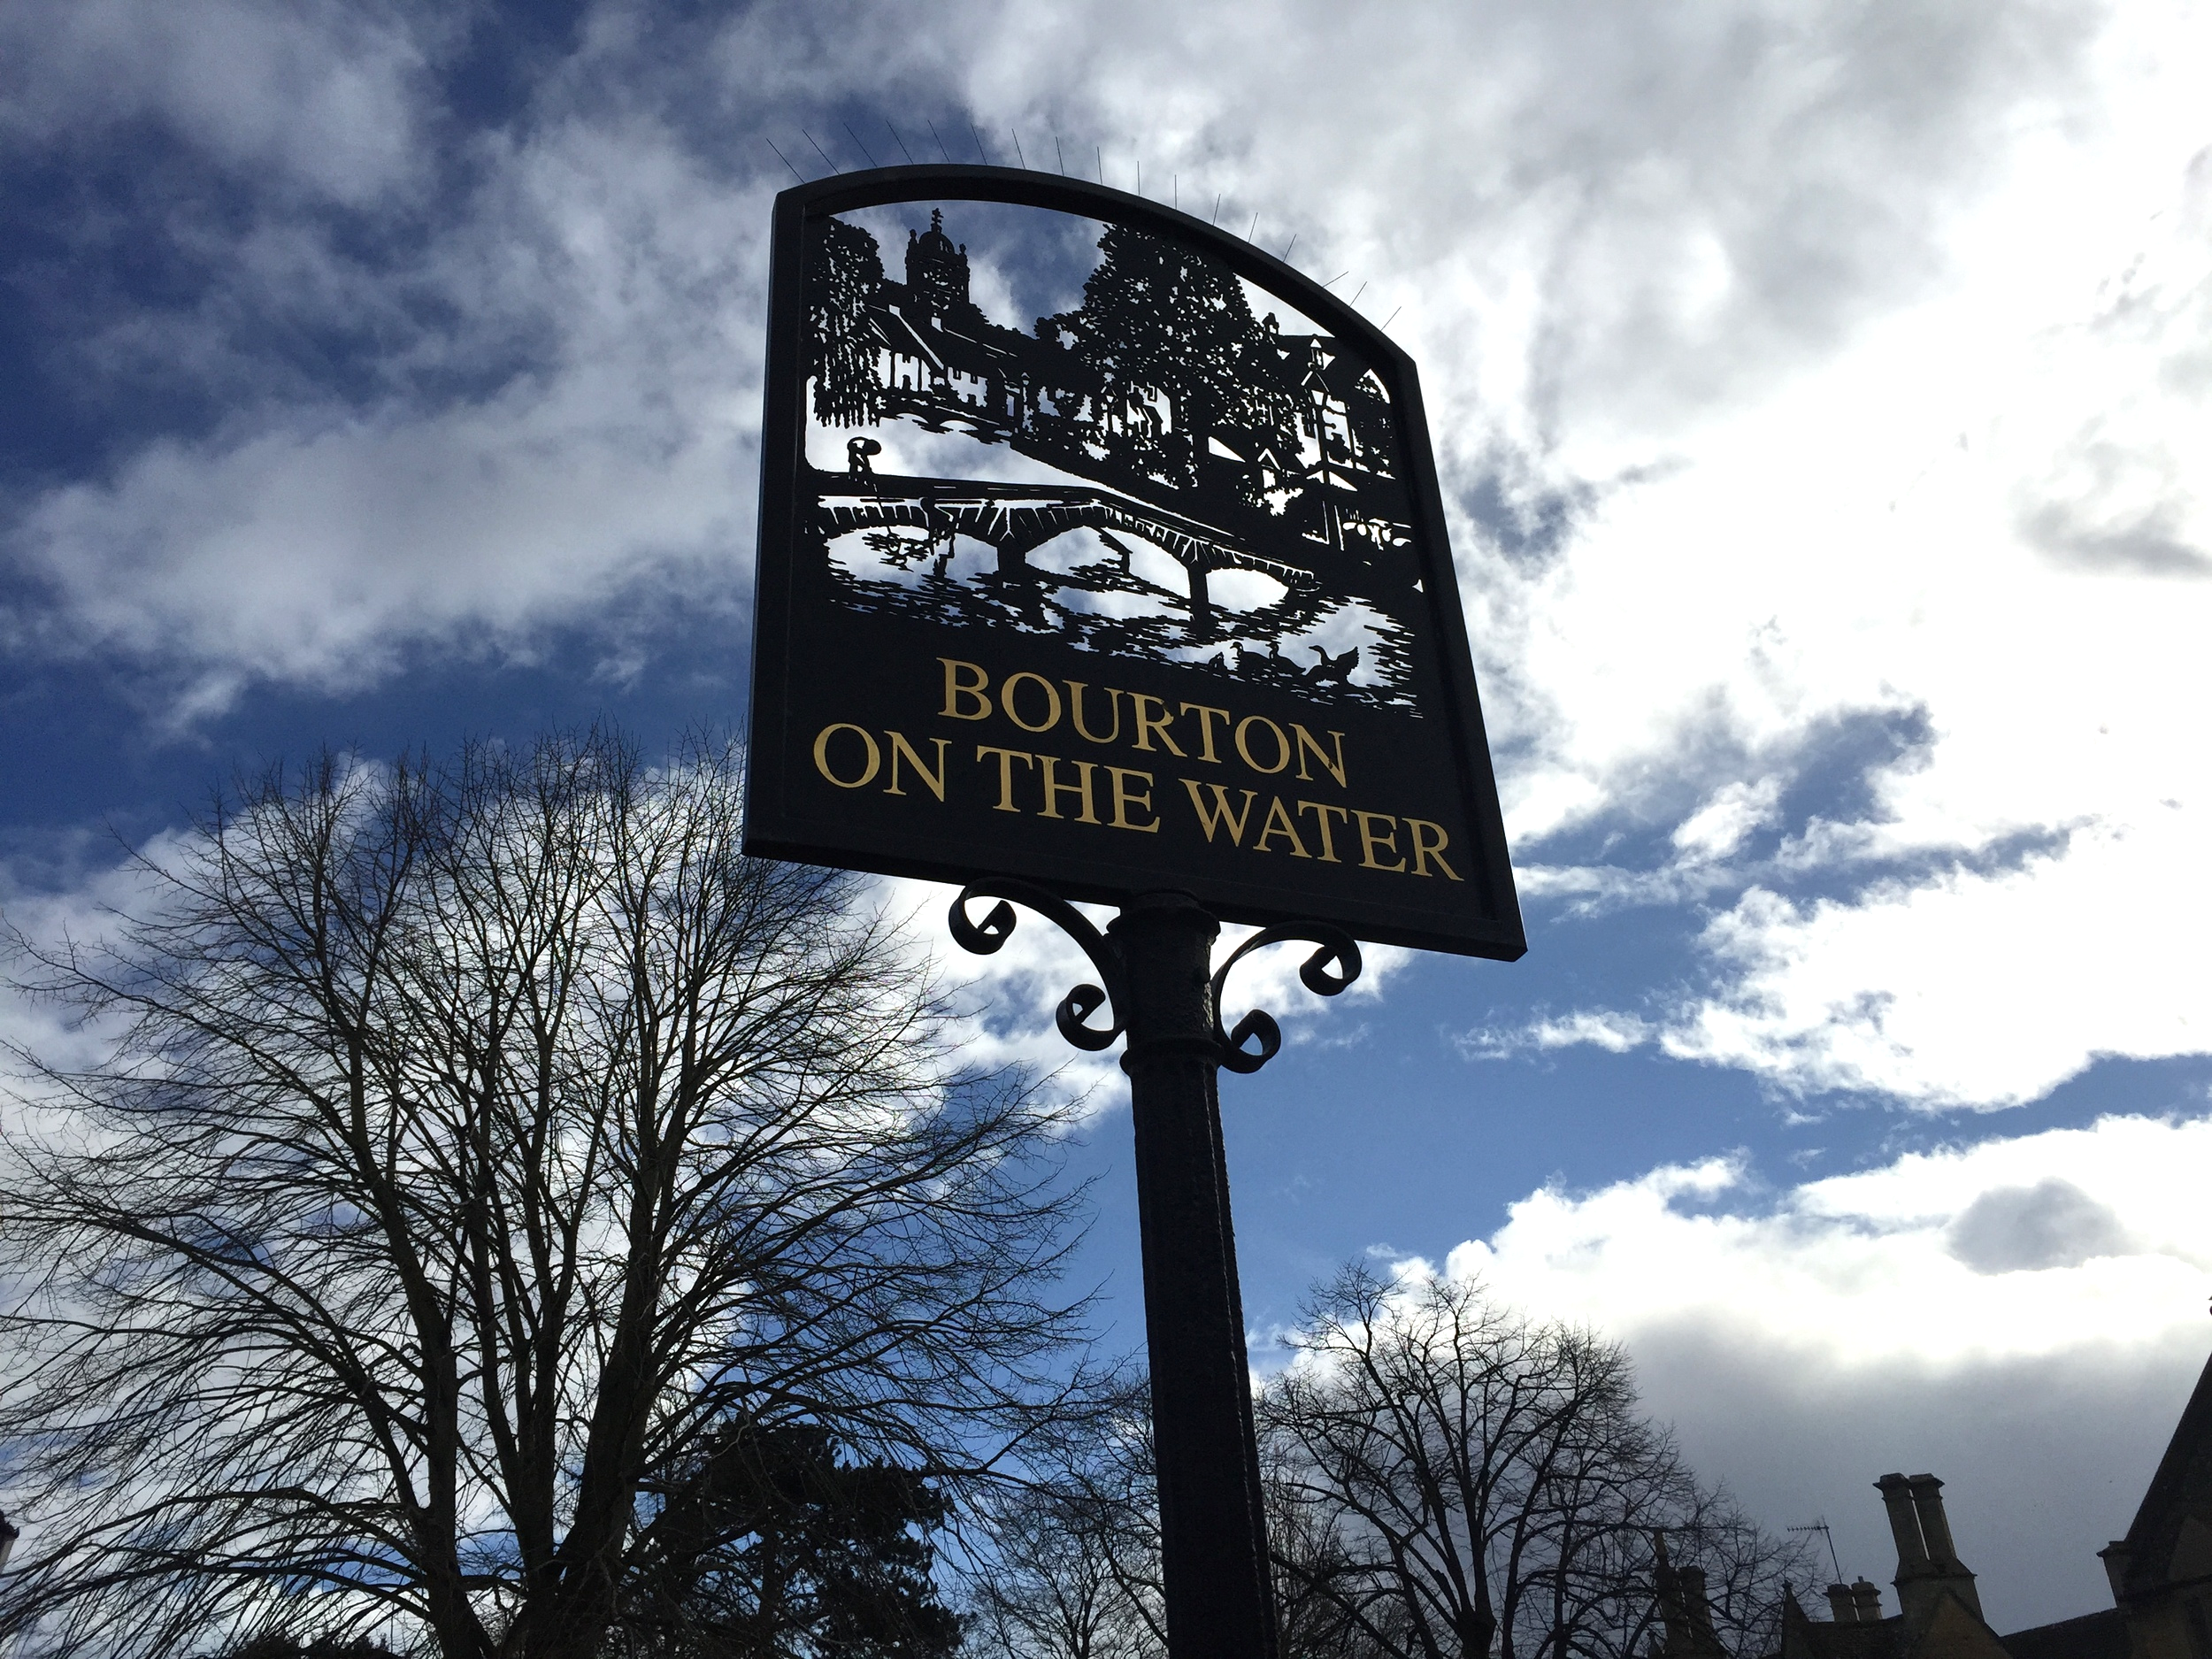 Bourton-on-the-water. Pic @jabberingjourno